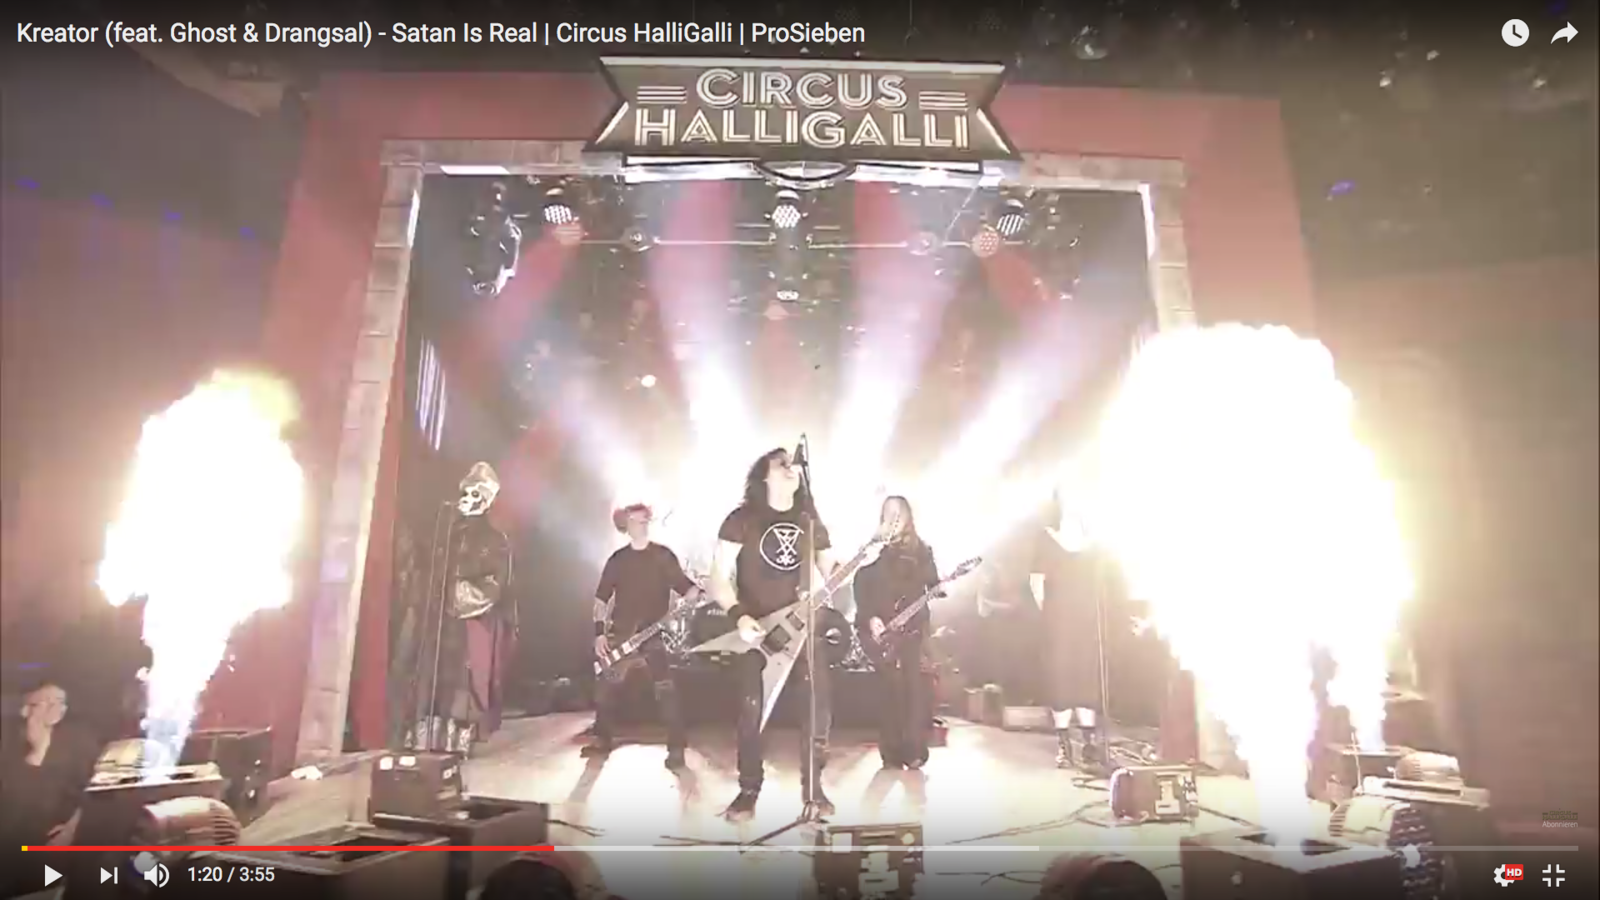 KREATOR &quot&#x3B;Satan is Real&quot&#x3B; featuring GHOST